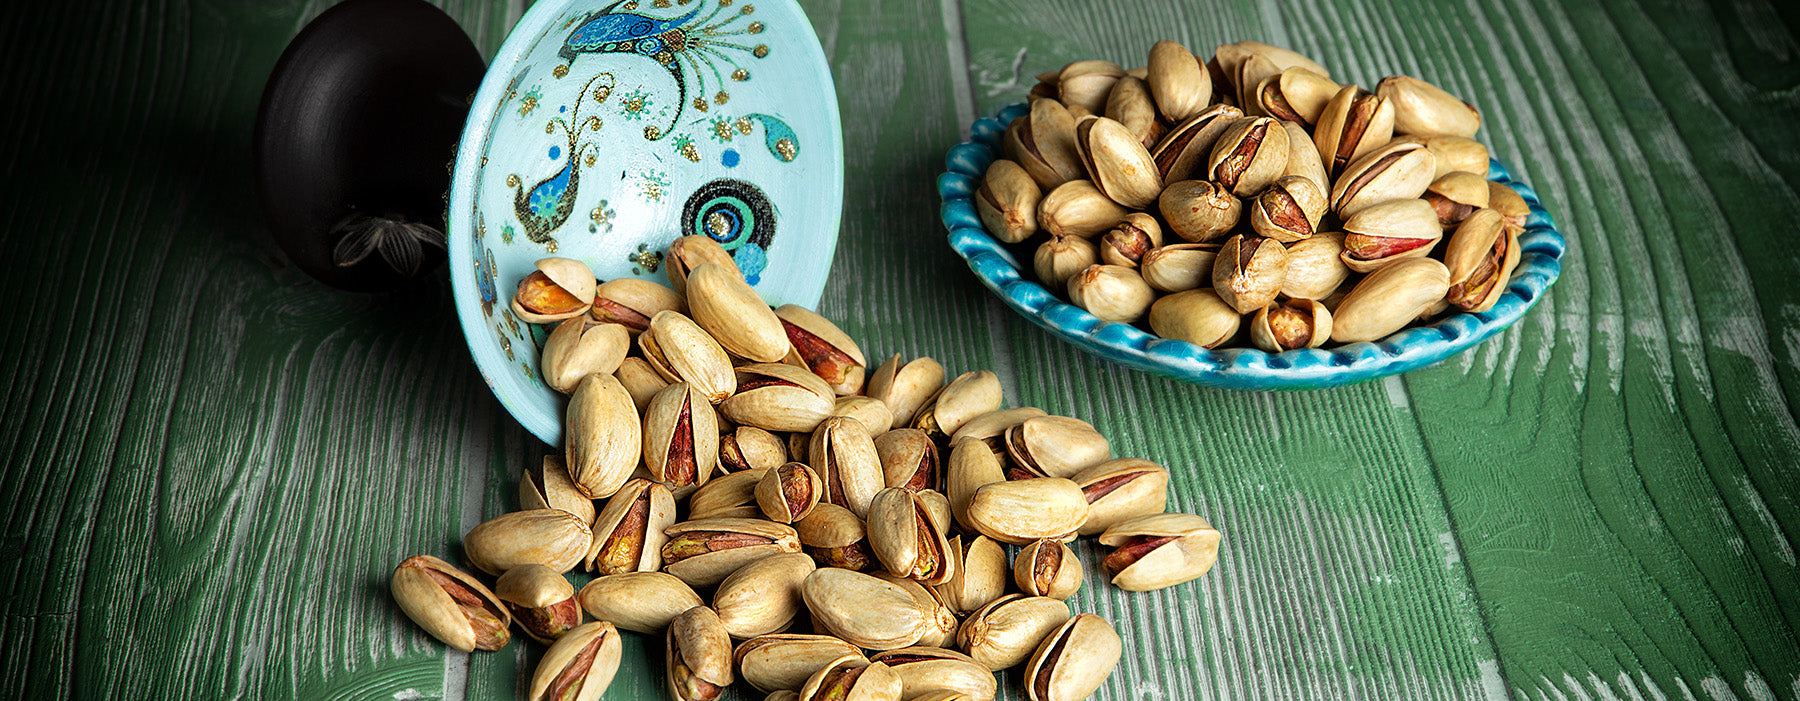 Finest Quality Pistachios, Nuts and Dried Fruits.